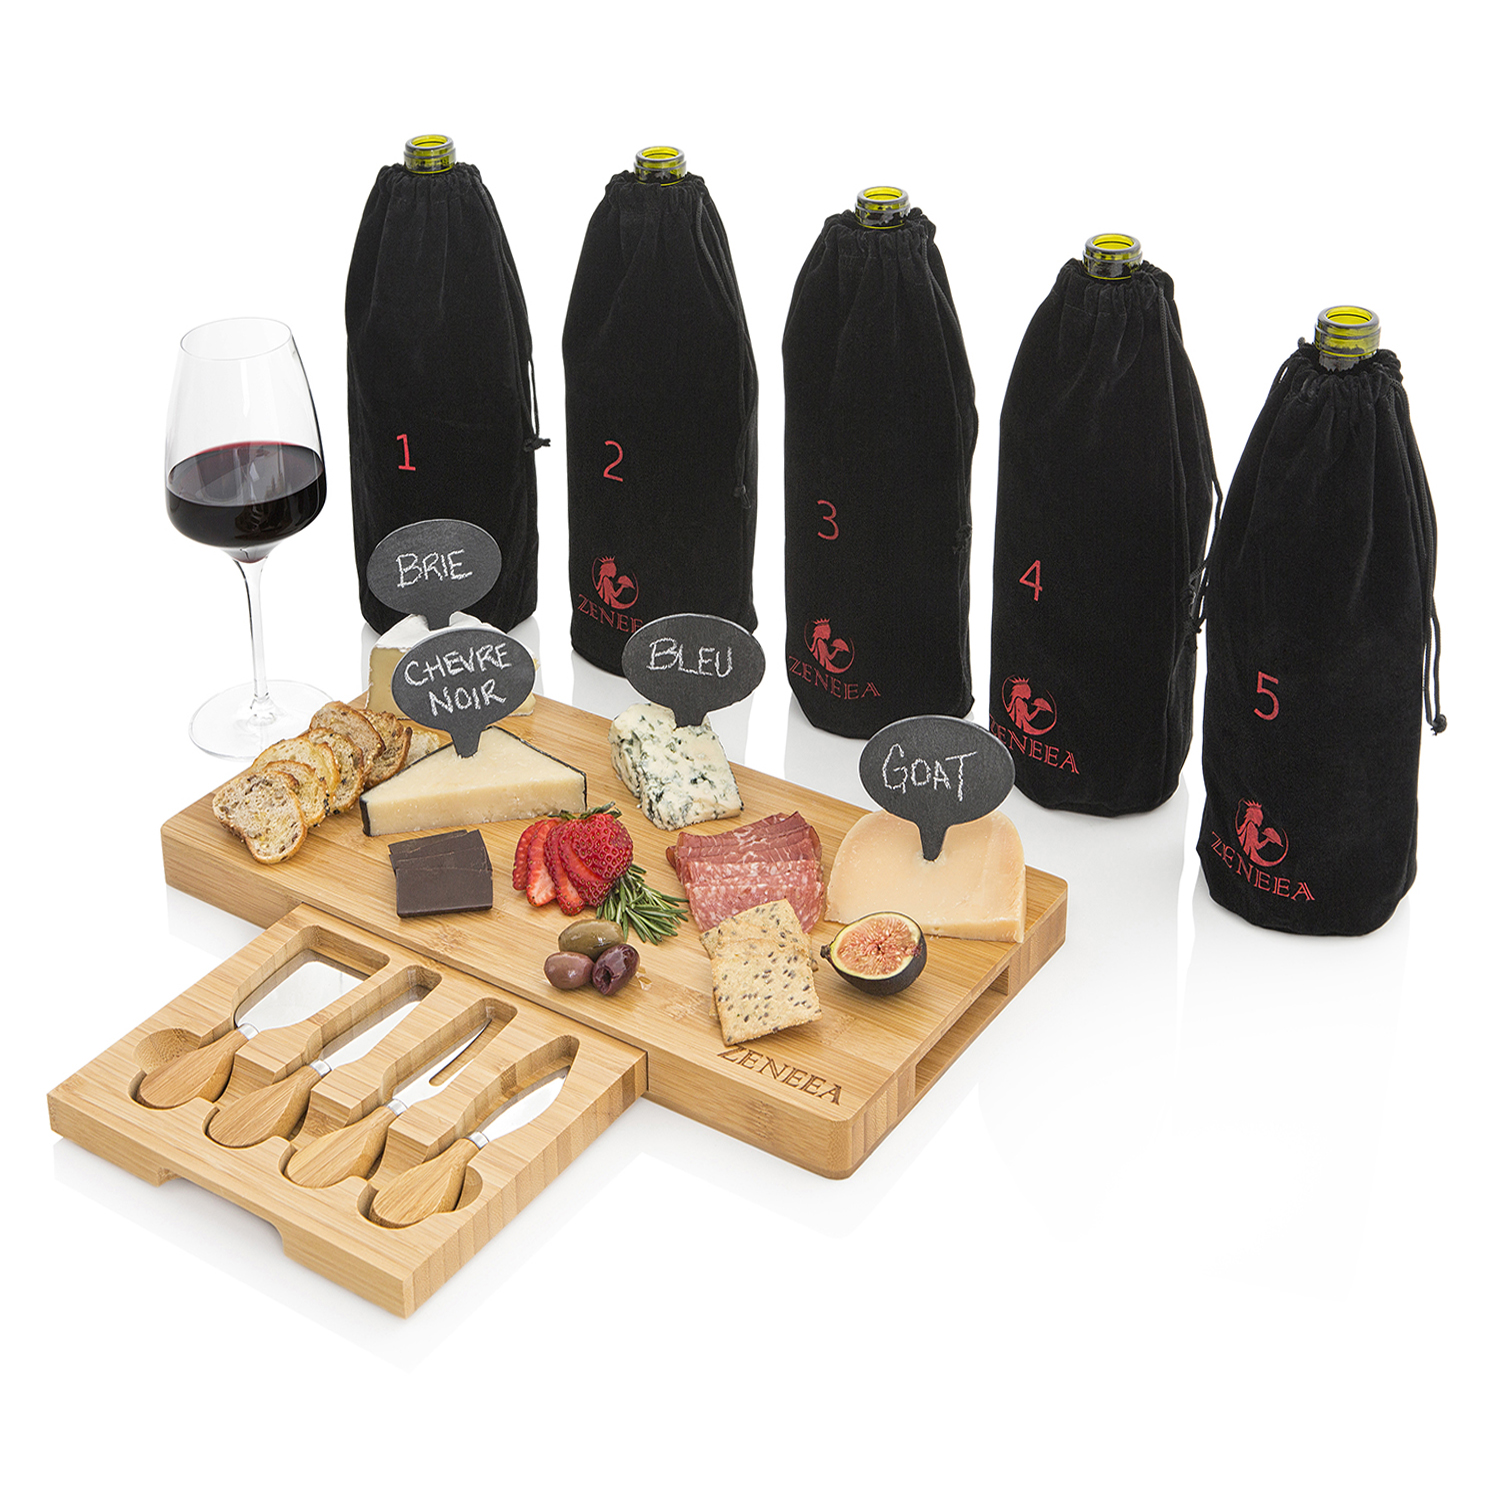 Vasko Photography Amazon Zeneea Cheese Board Product Shot 6